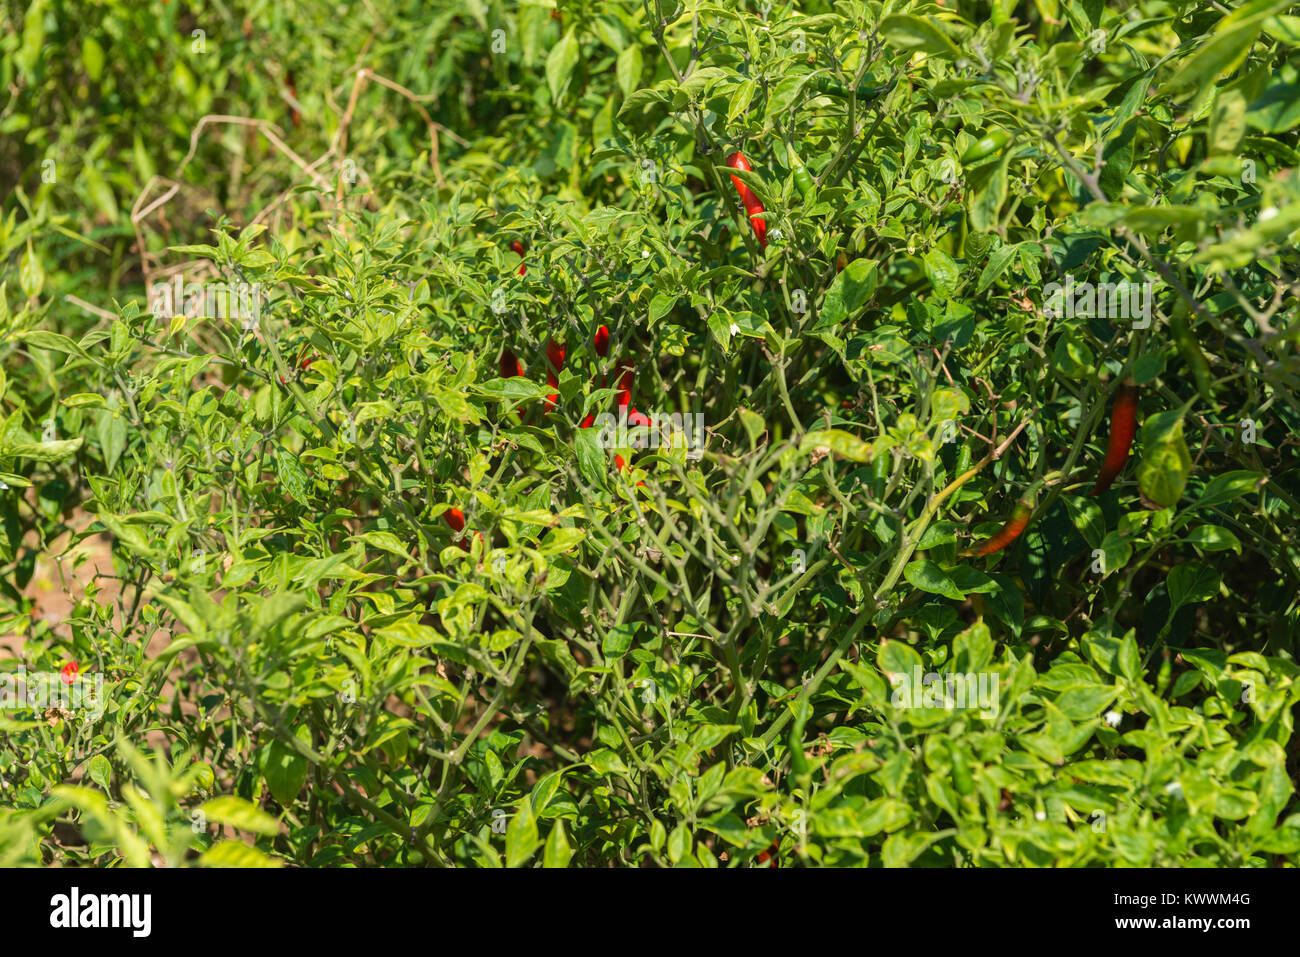 Field of red chilly pepper, Anloga, Volta Region, Ghana, Africa - Stock Image